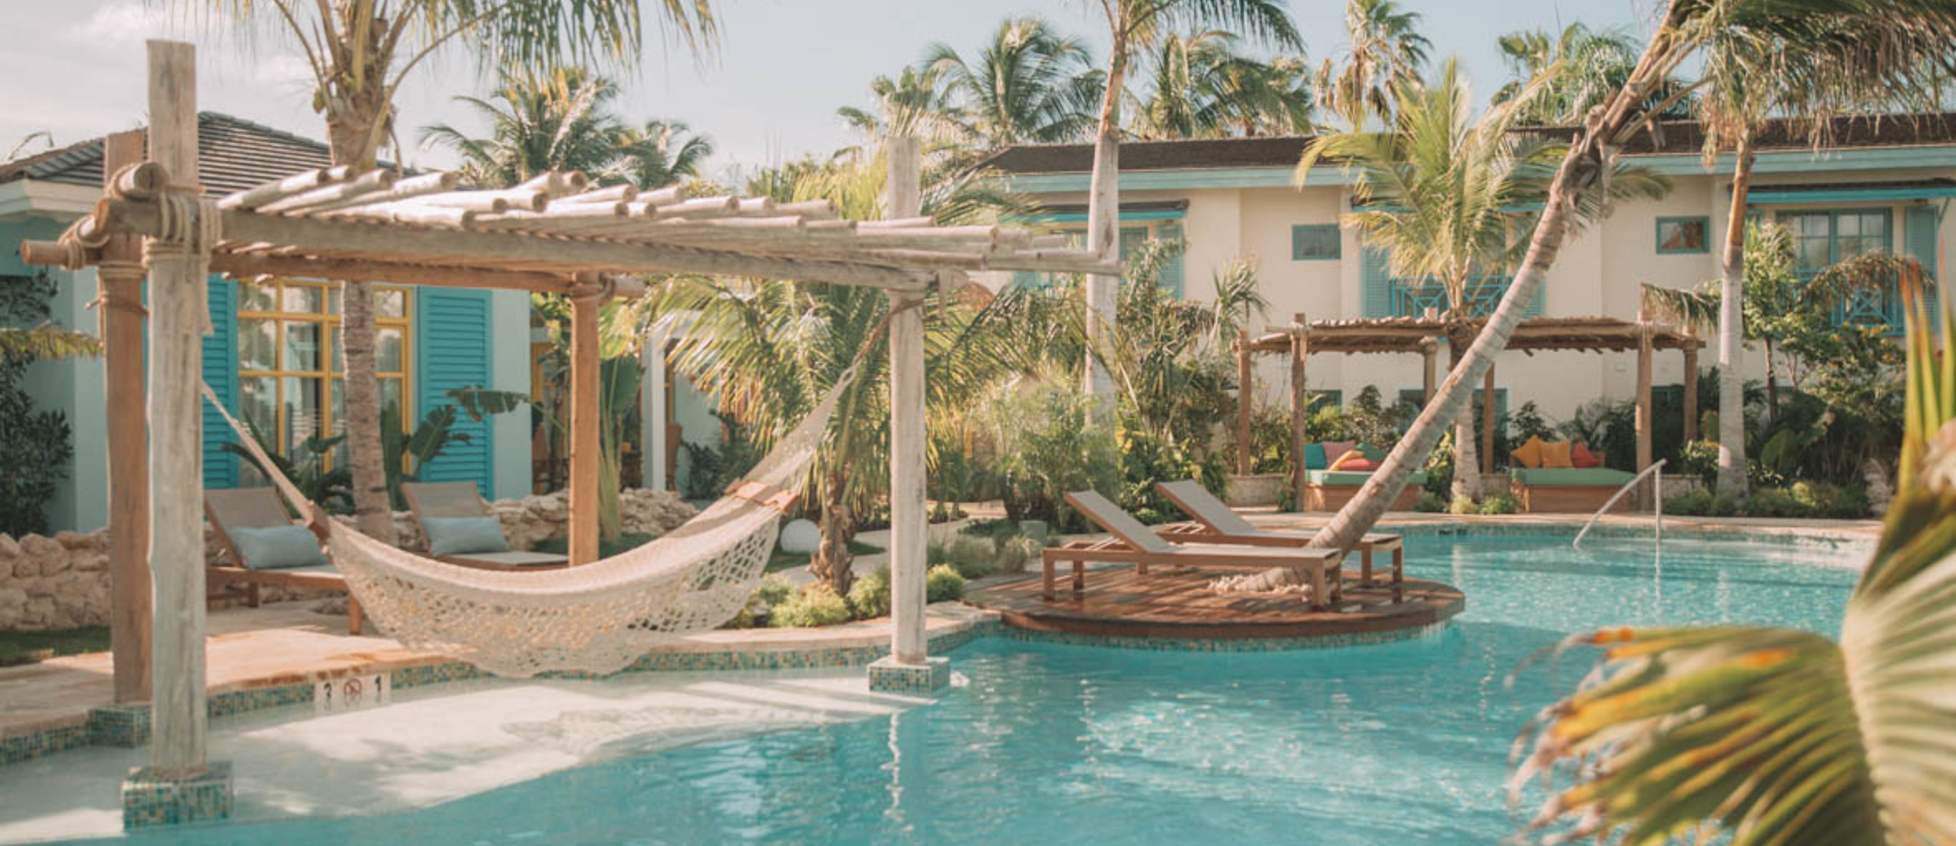 Overview pool with hammock